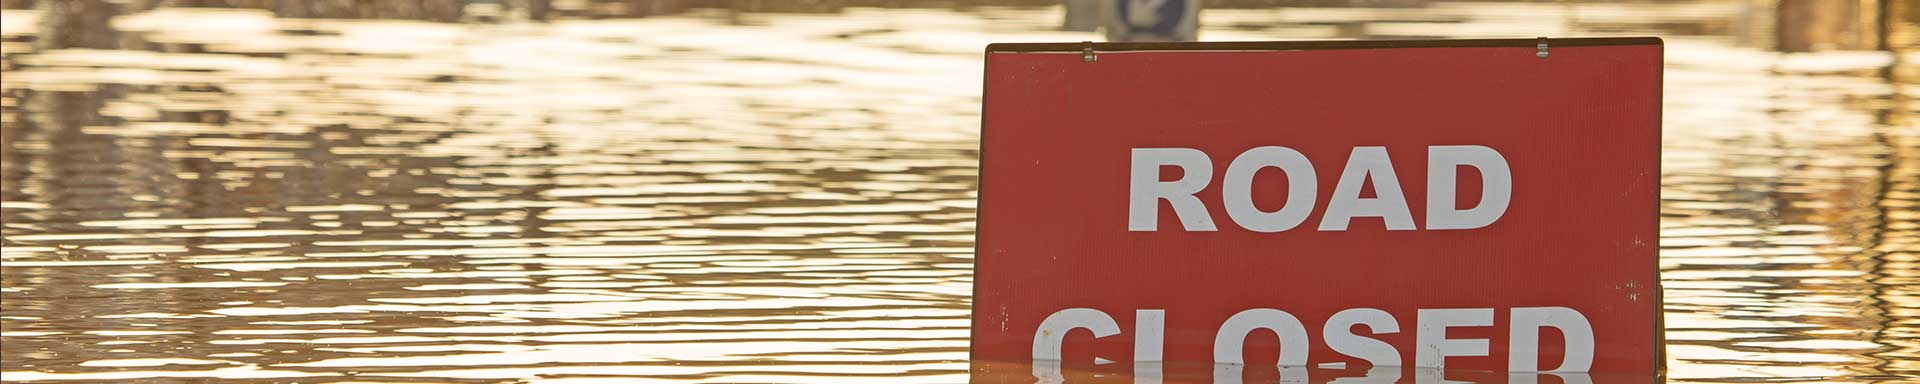 flooded road closed sign